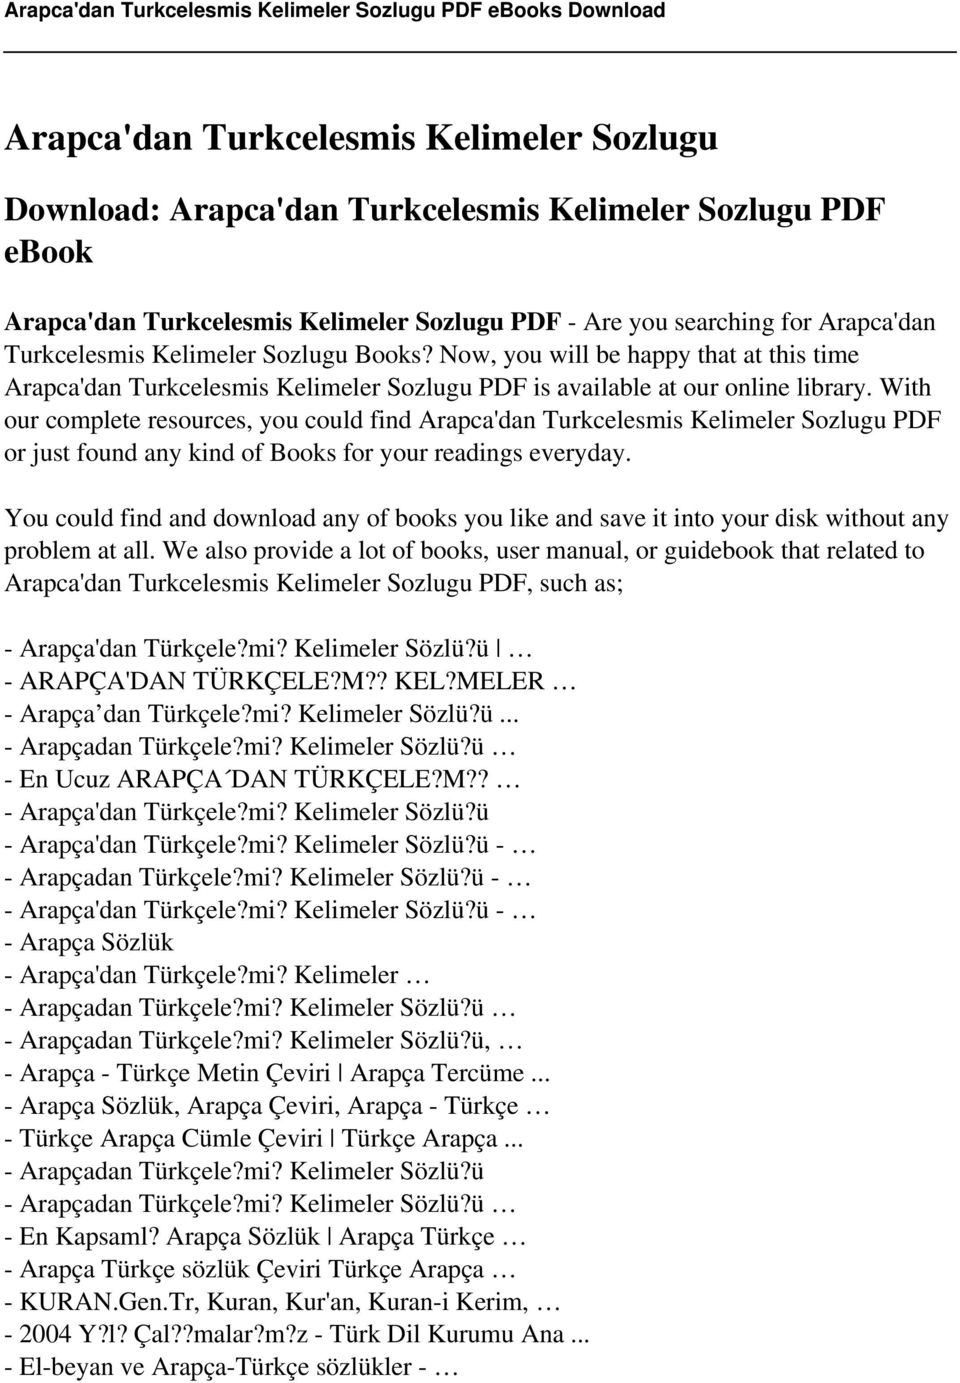 With our complete resources, you could find Arapca'dan Turkcelesmis Kelimeler Sozlugu PDF or just found any kind of Books for your readings everyday.